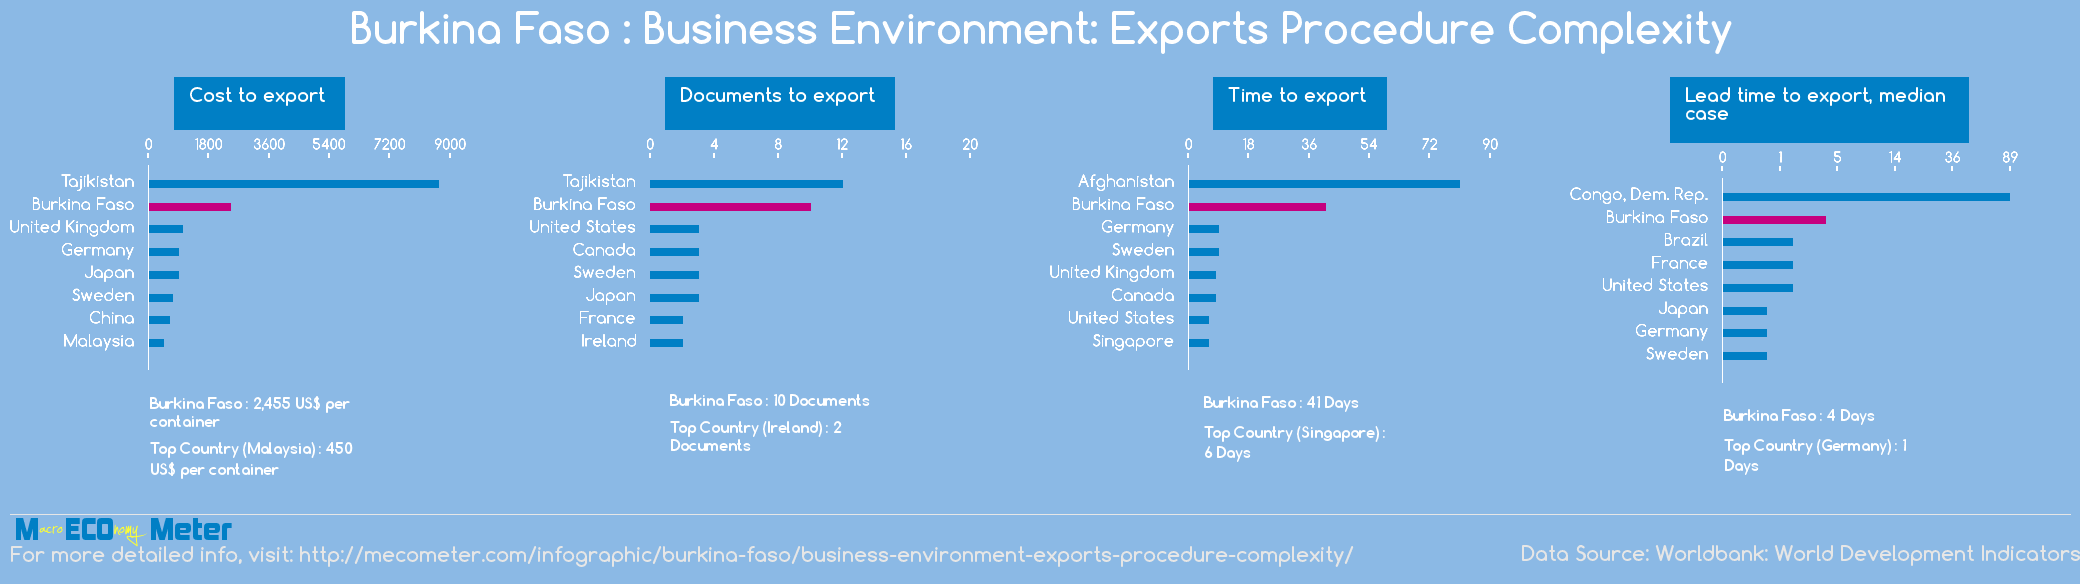 Burkina Faso : Business Environment: Exports Procedure Complexity